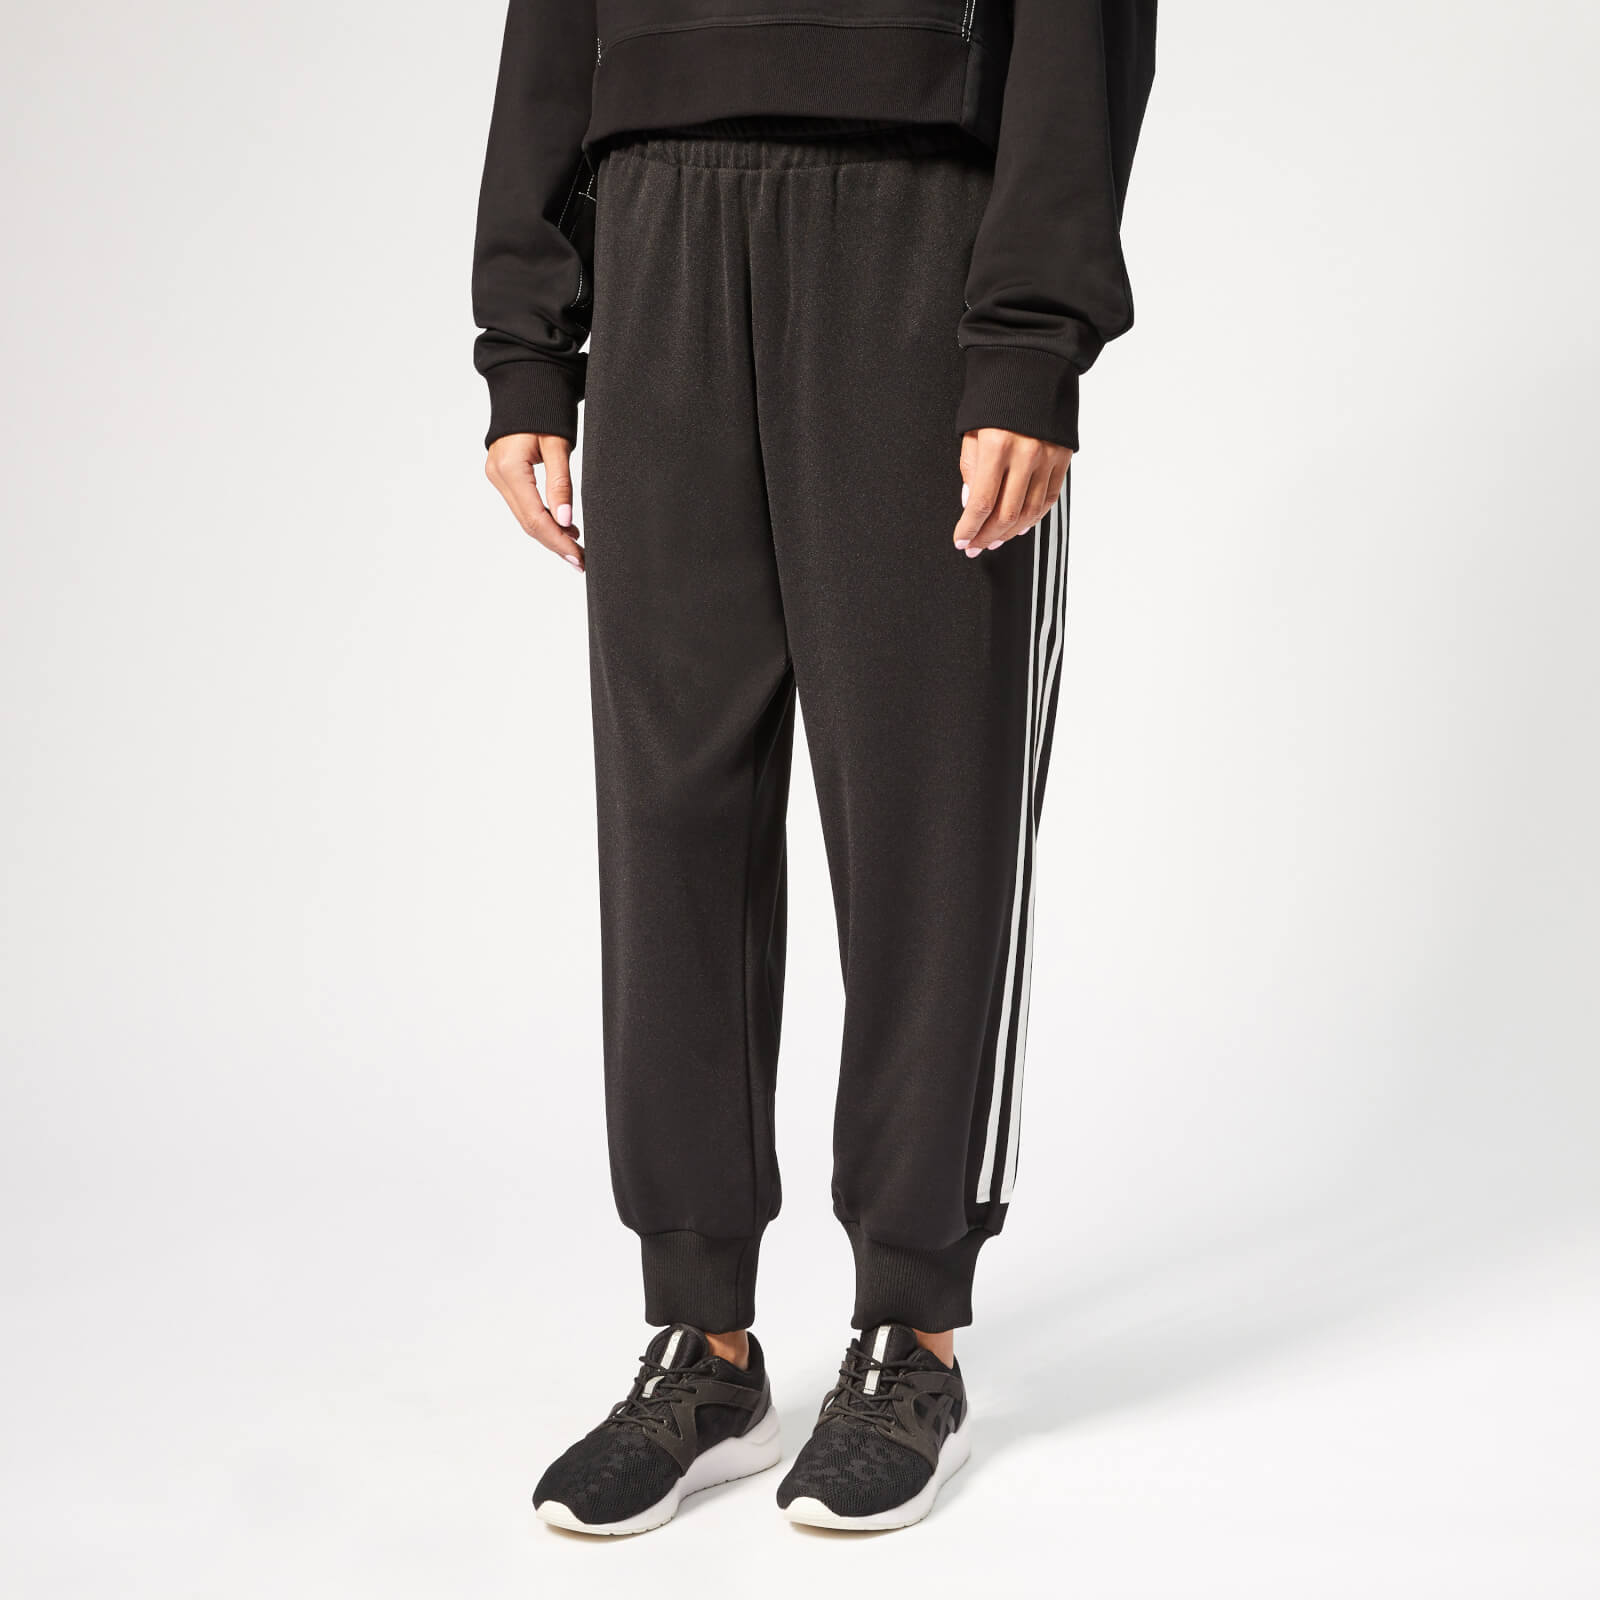 26437c362 Y-3 Women s 3 Stripe Track Pants - Black - Free UK Delivery over £50